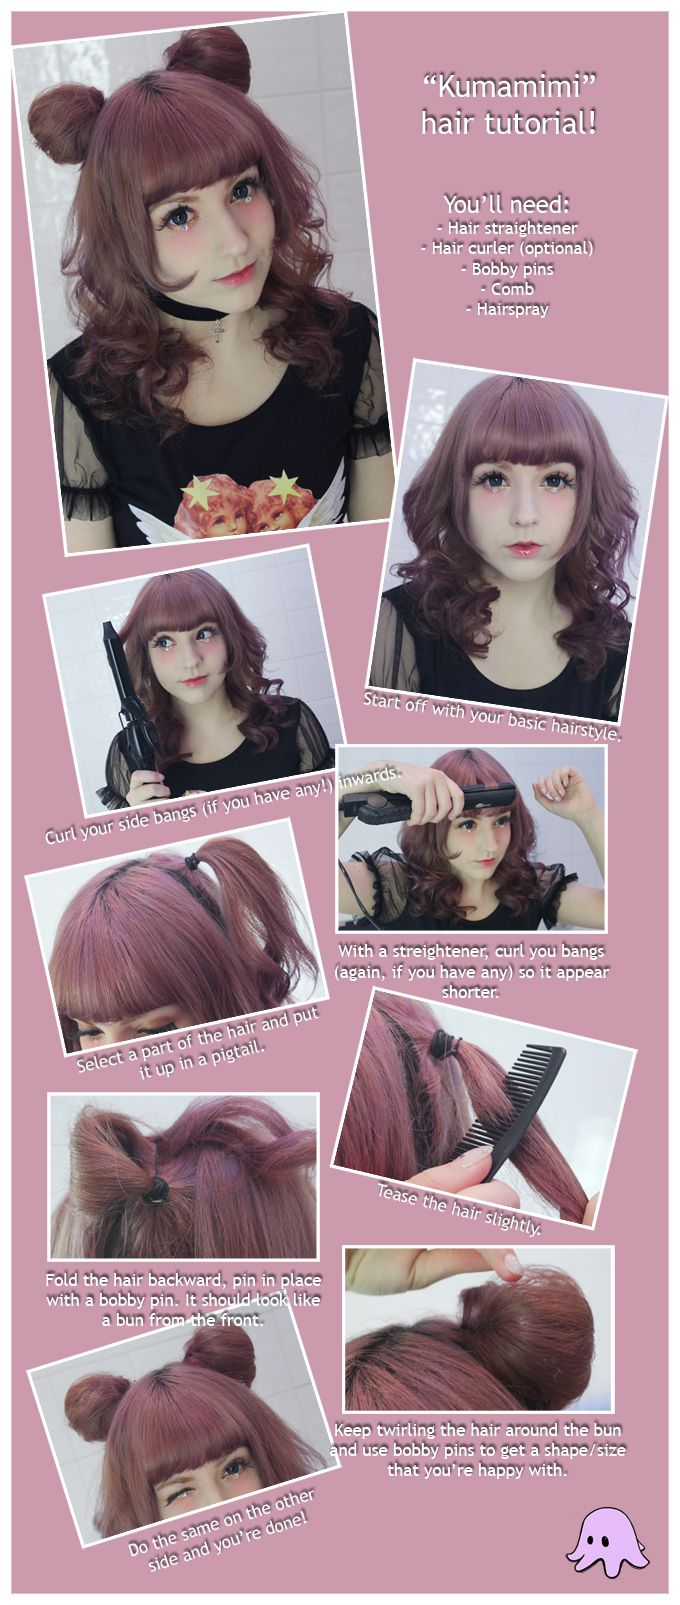 Kawaii hairstyle (credits to the owner)